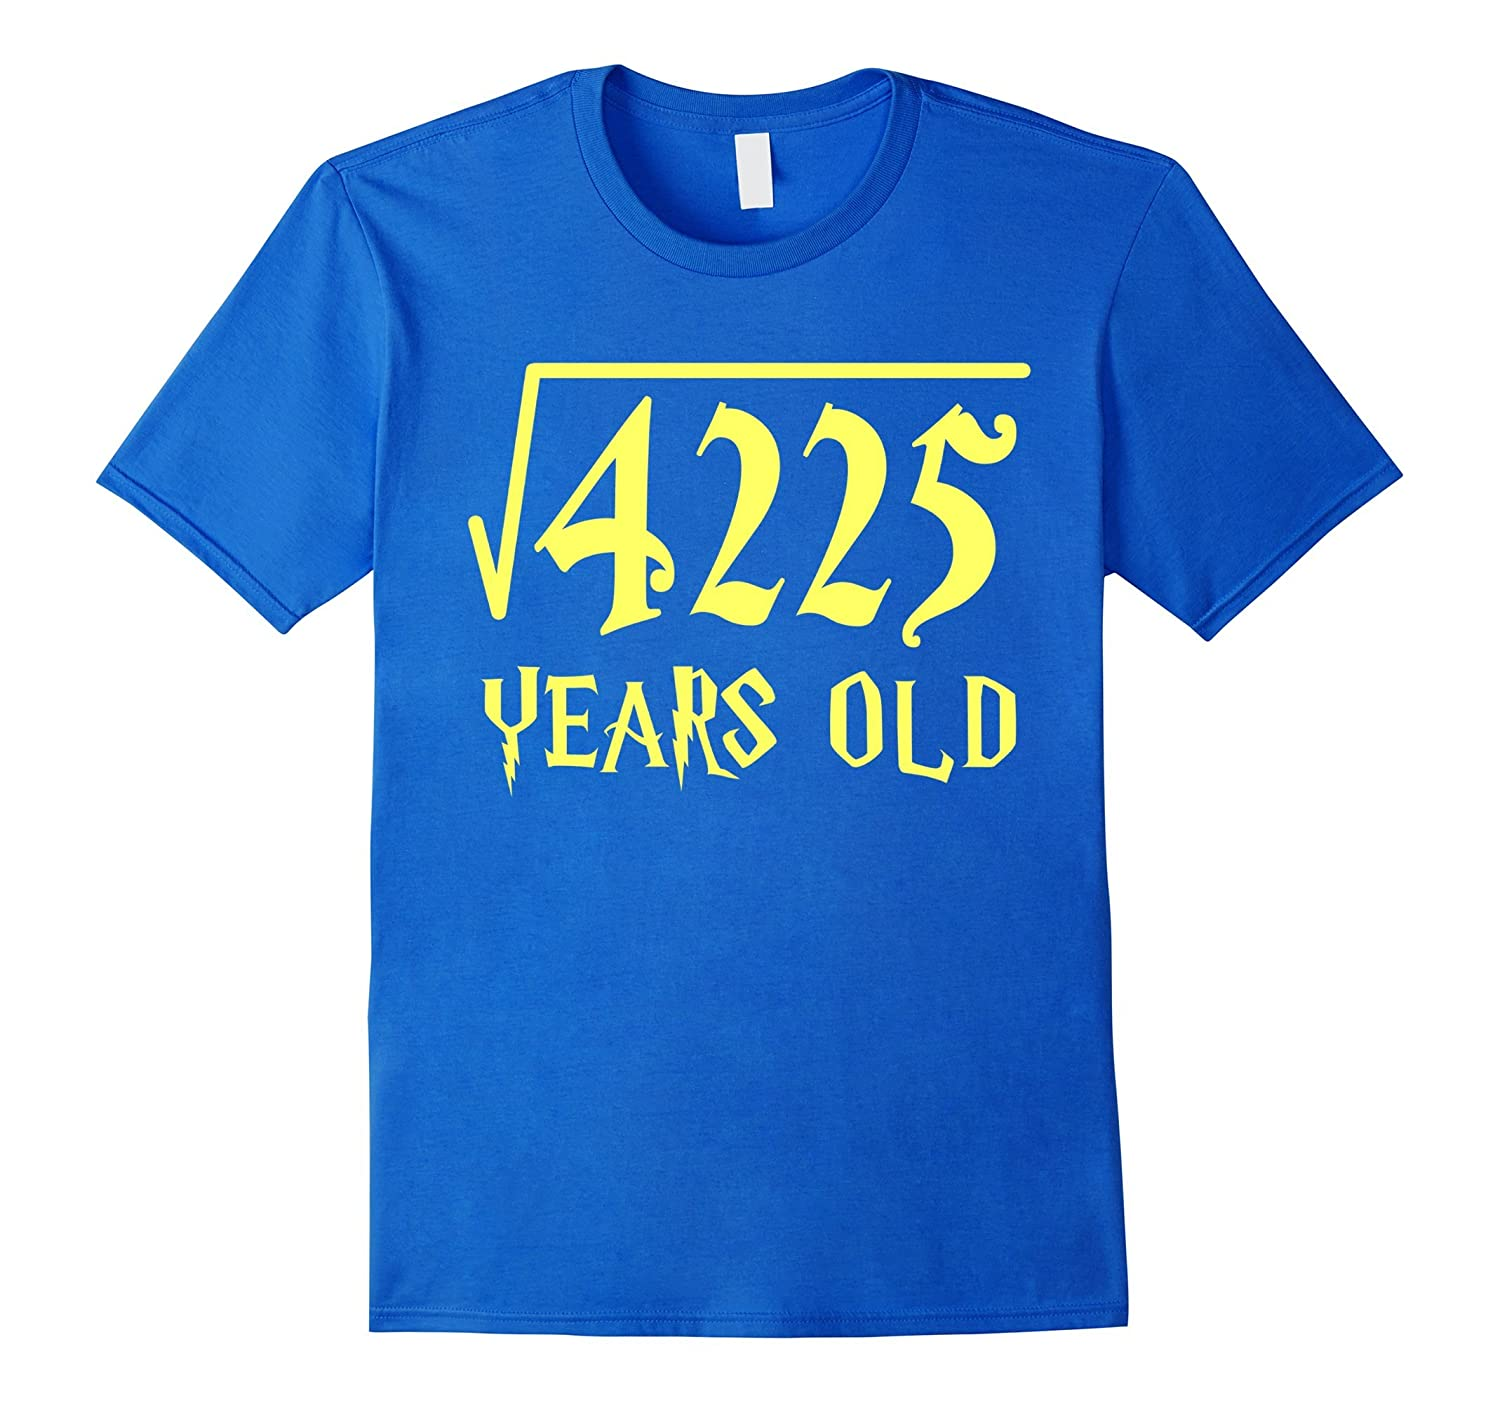 Square Root Of 4225 65 Years Old 65th Birthday T Shirt CL